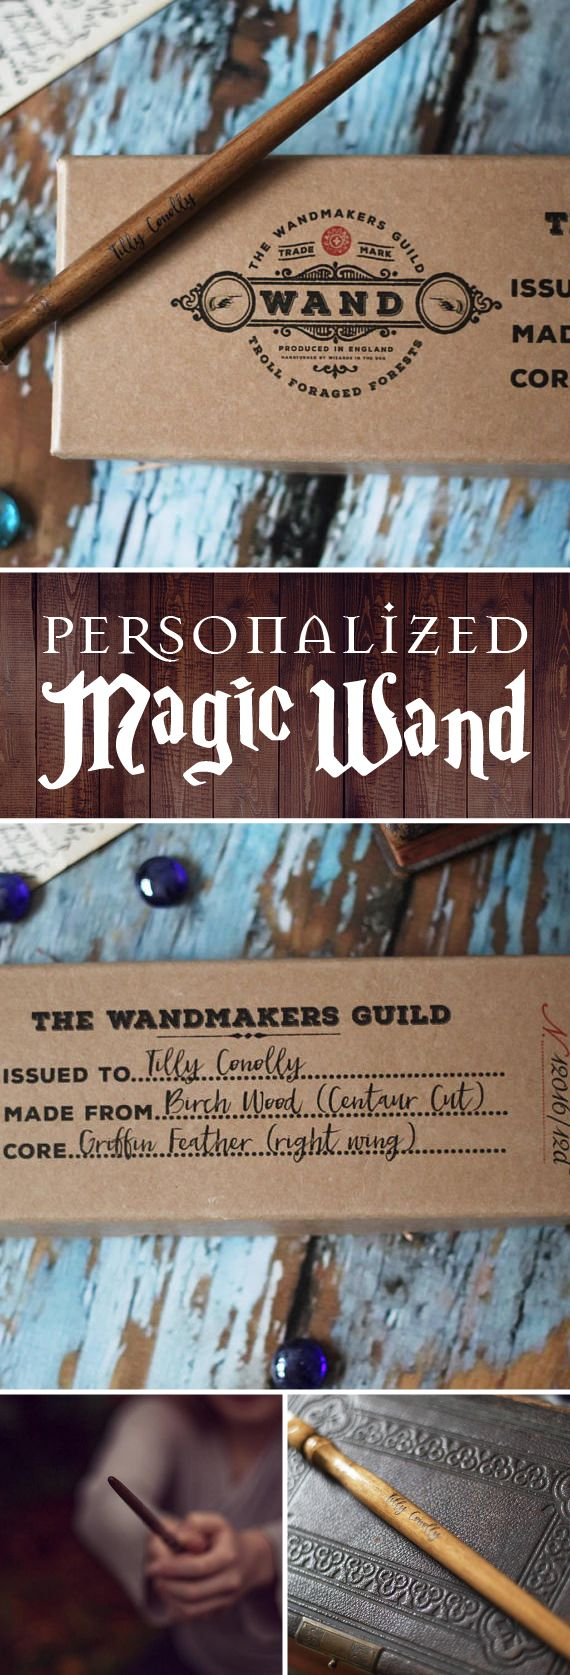 ADORABLE! This would make the perfect gift for the birthday girl or boy at a Harry Potter themed party. All of the details that were designed into the packaging, along with the personalization of the wand, make this such a thoughtful thing to give to a wizard or witch enthusiast. #magicwand #wand #wizard #witch #magic #halloween #halloweencostumes  #affiliate